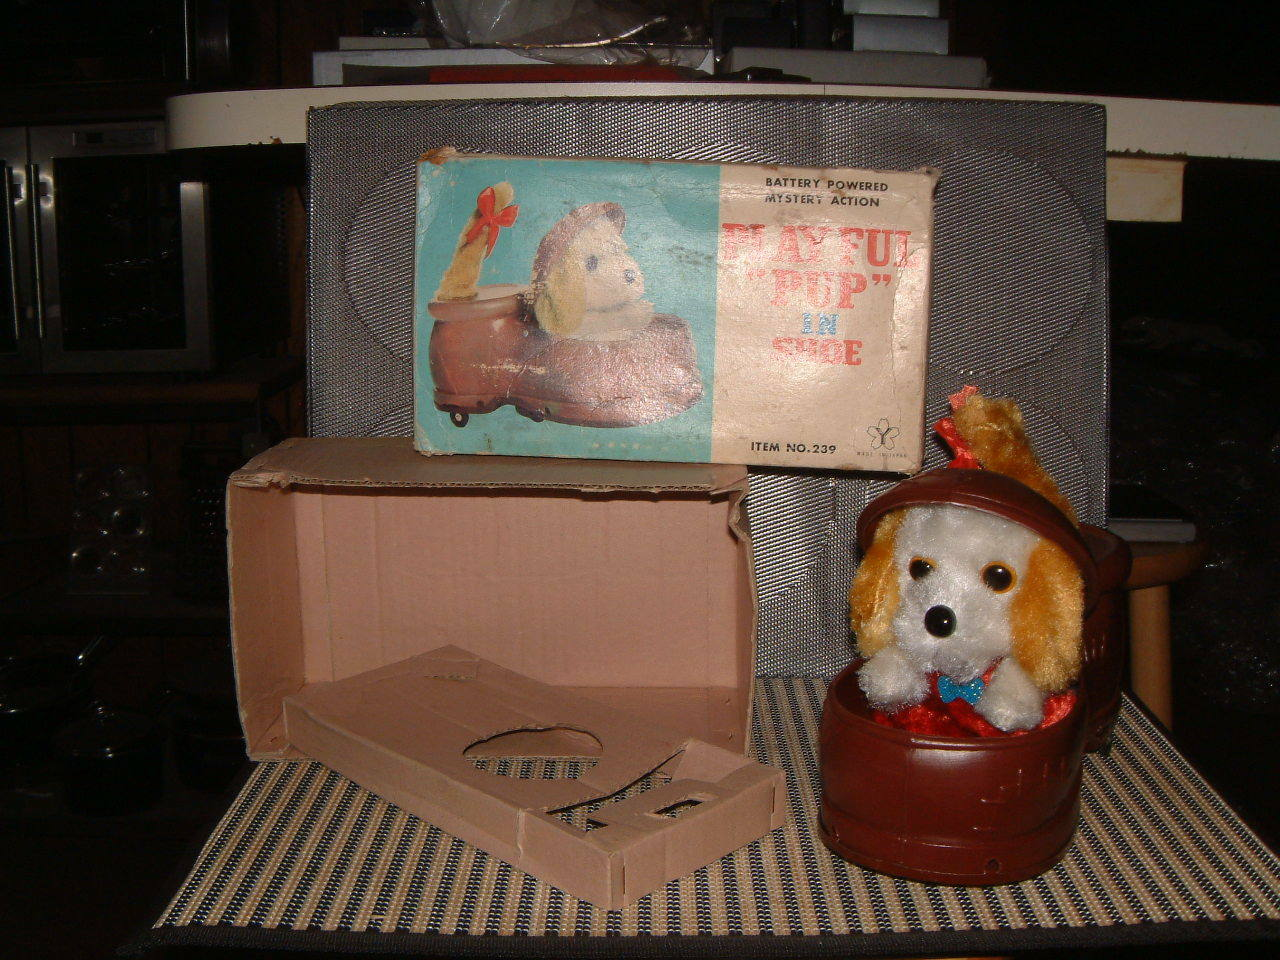 YONEZAWA BATTERY OPERATED, OPERATED, OPERATED, 100% FULLY FUNCTIONAL, PLAYFUL PUP IN SHOE W BOX  3ca44b